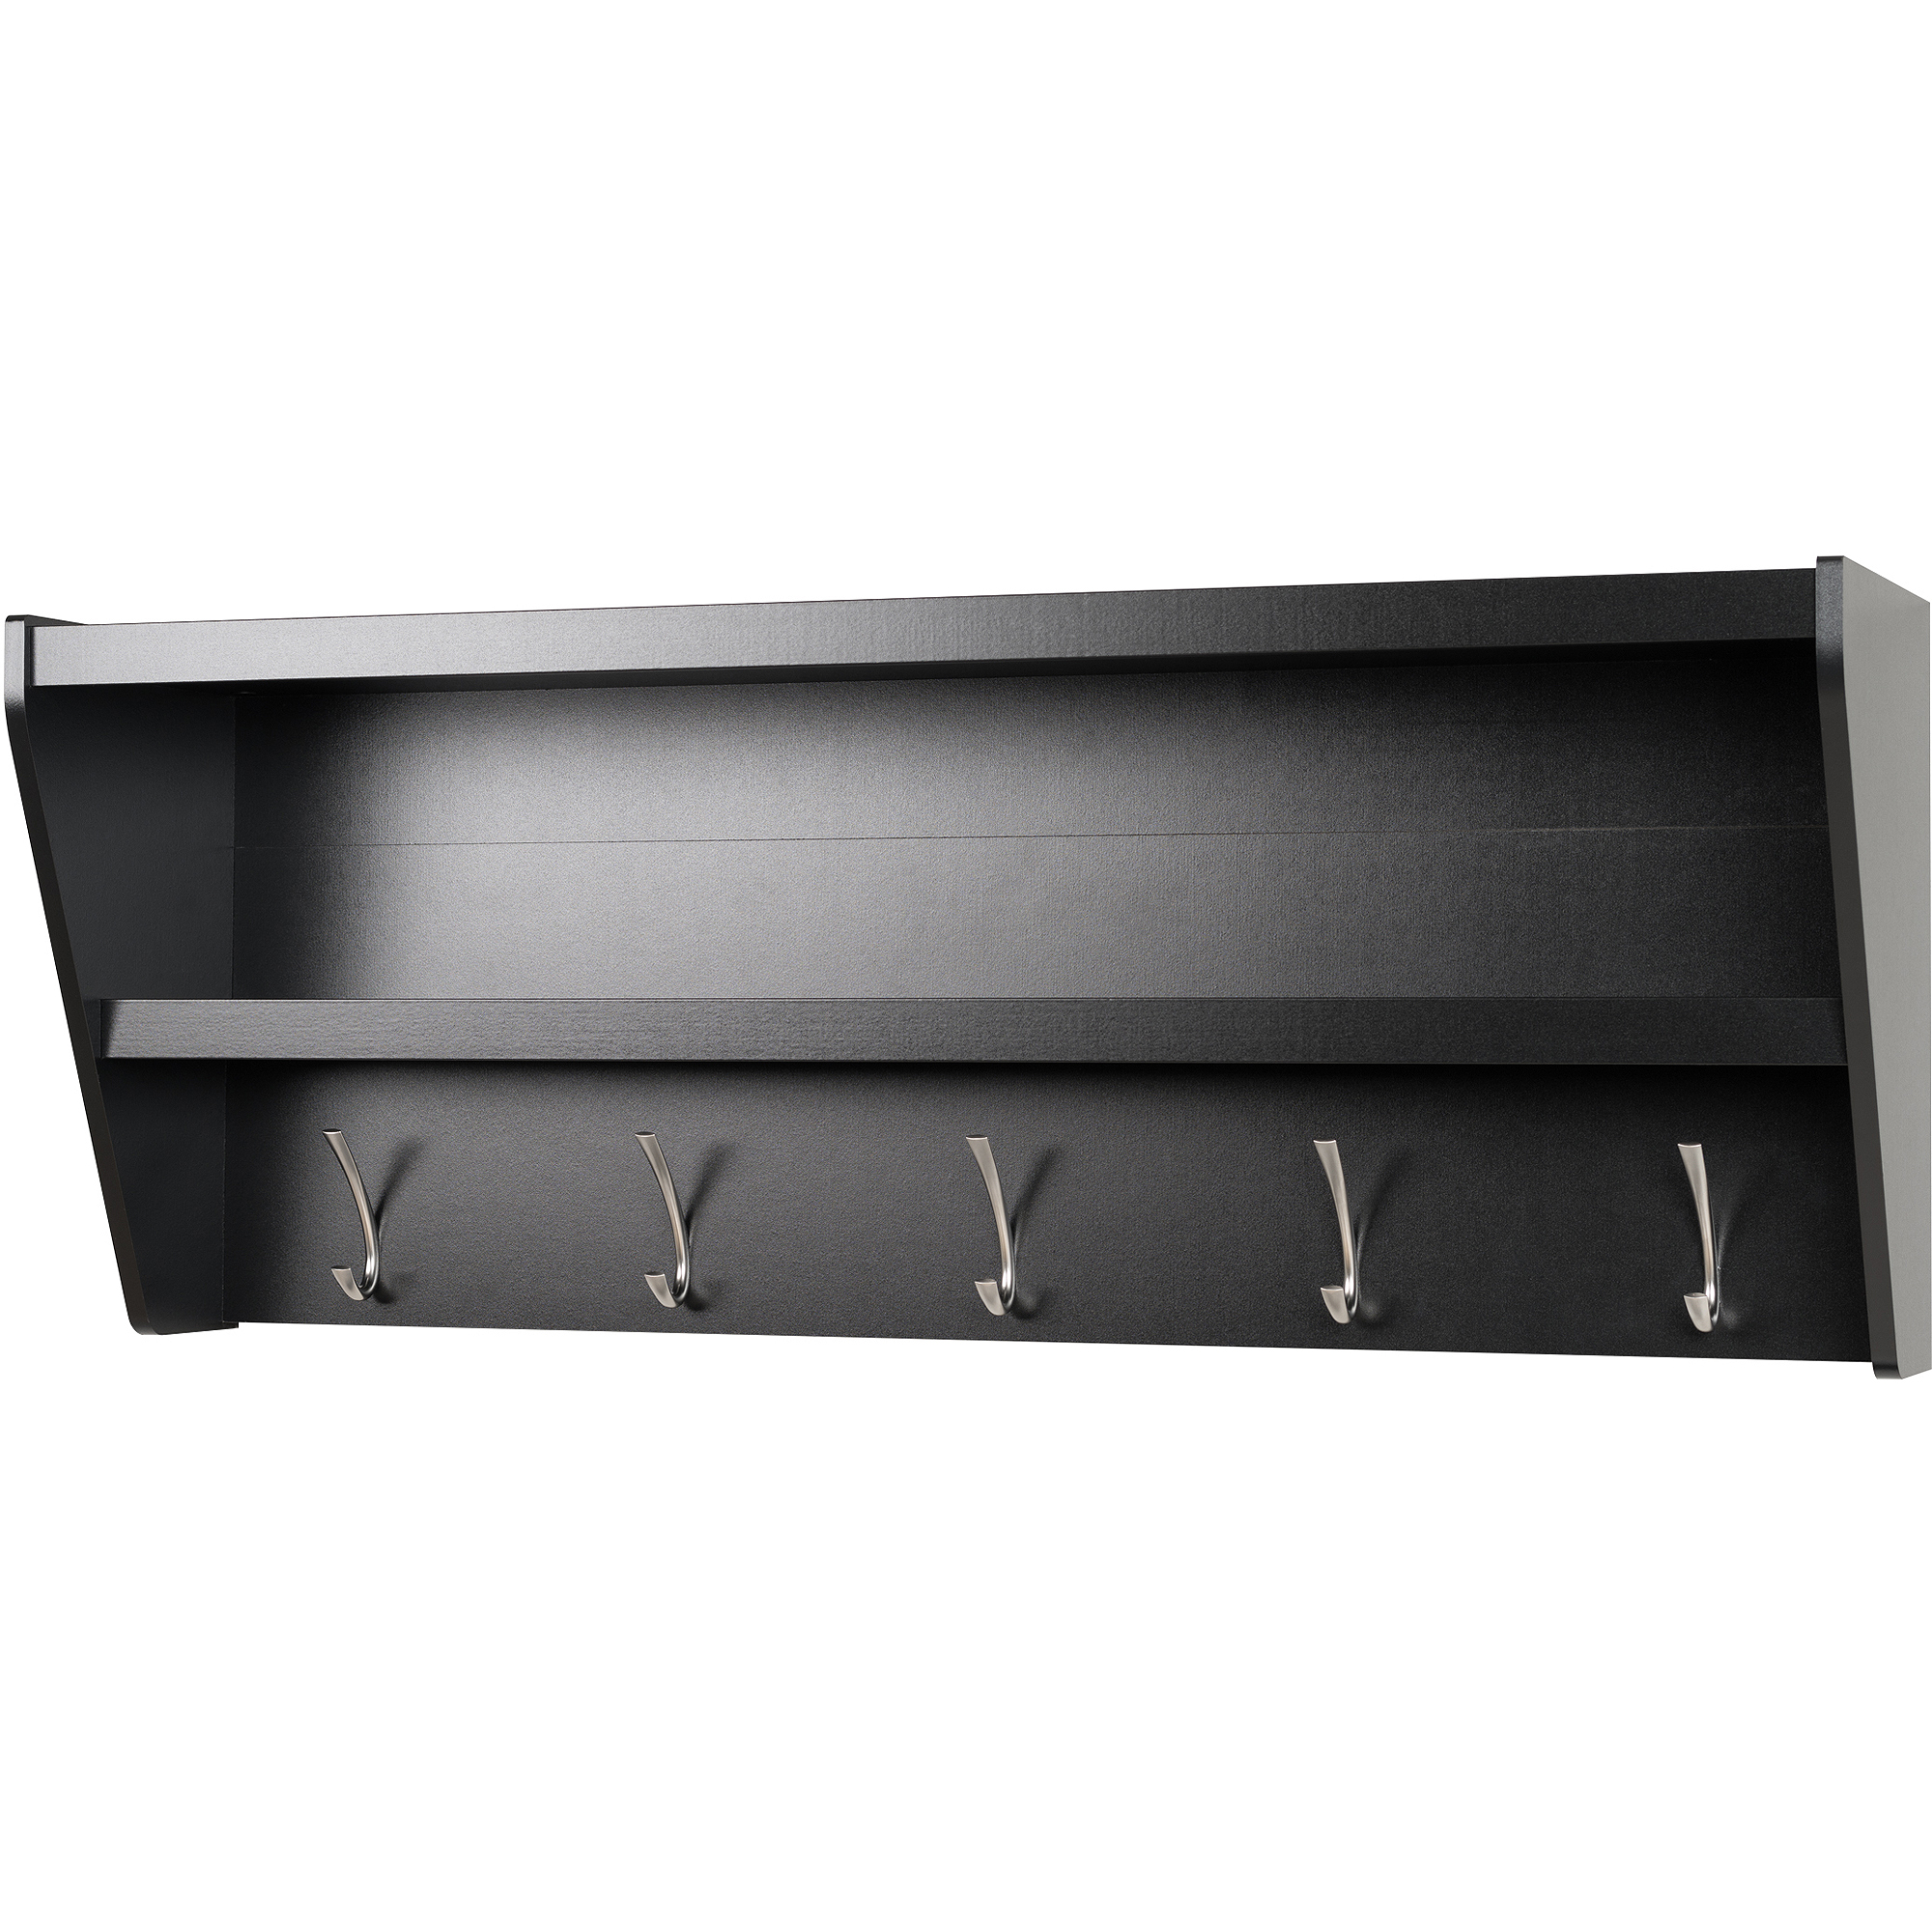 shelf rde v catalog us hooks products en ikea hook with wall